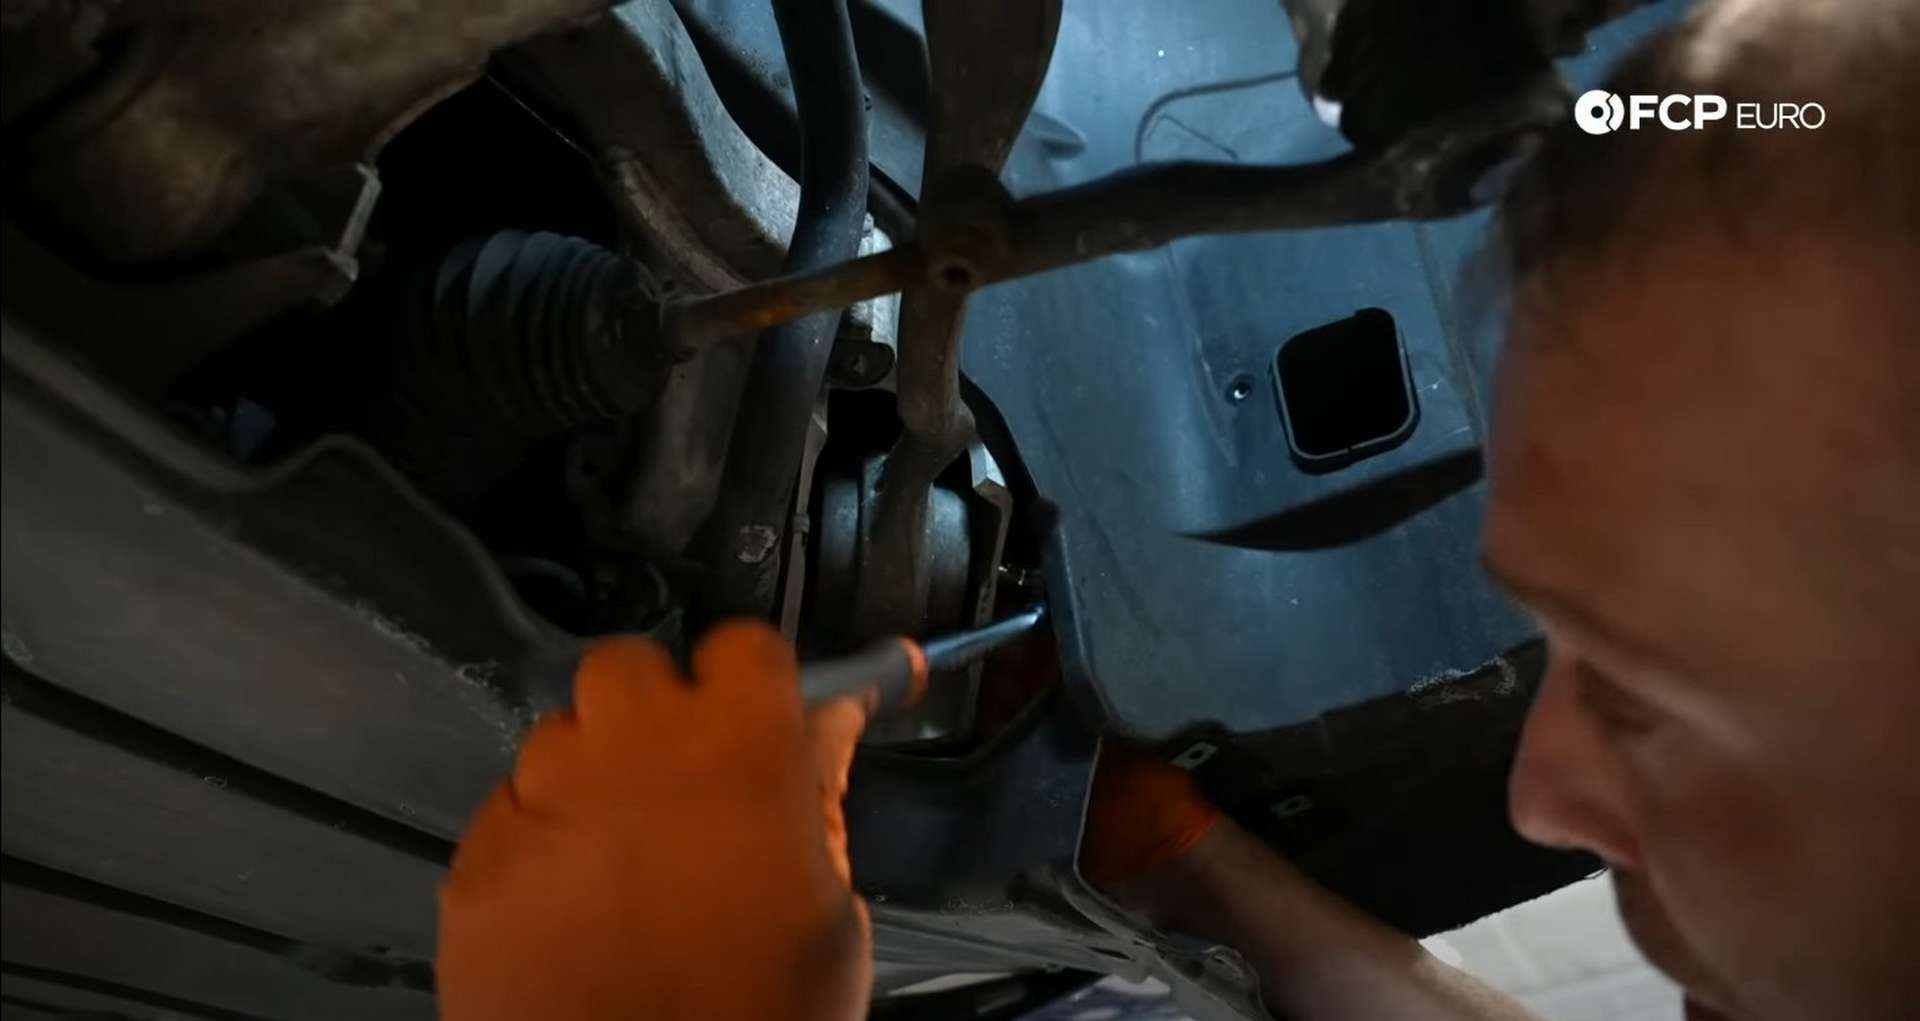 DIY BMW E9X Front Control Arm Upgrade removing the tension rod's inner mounting bolt